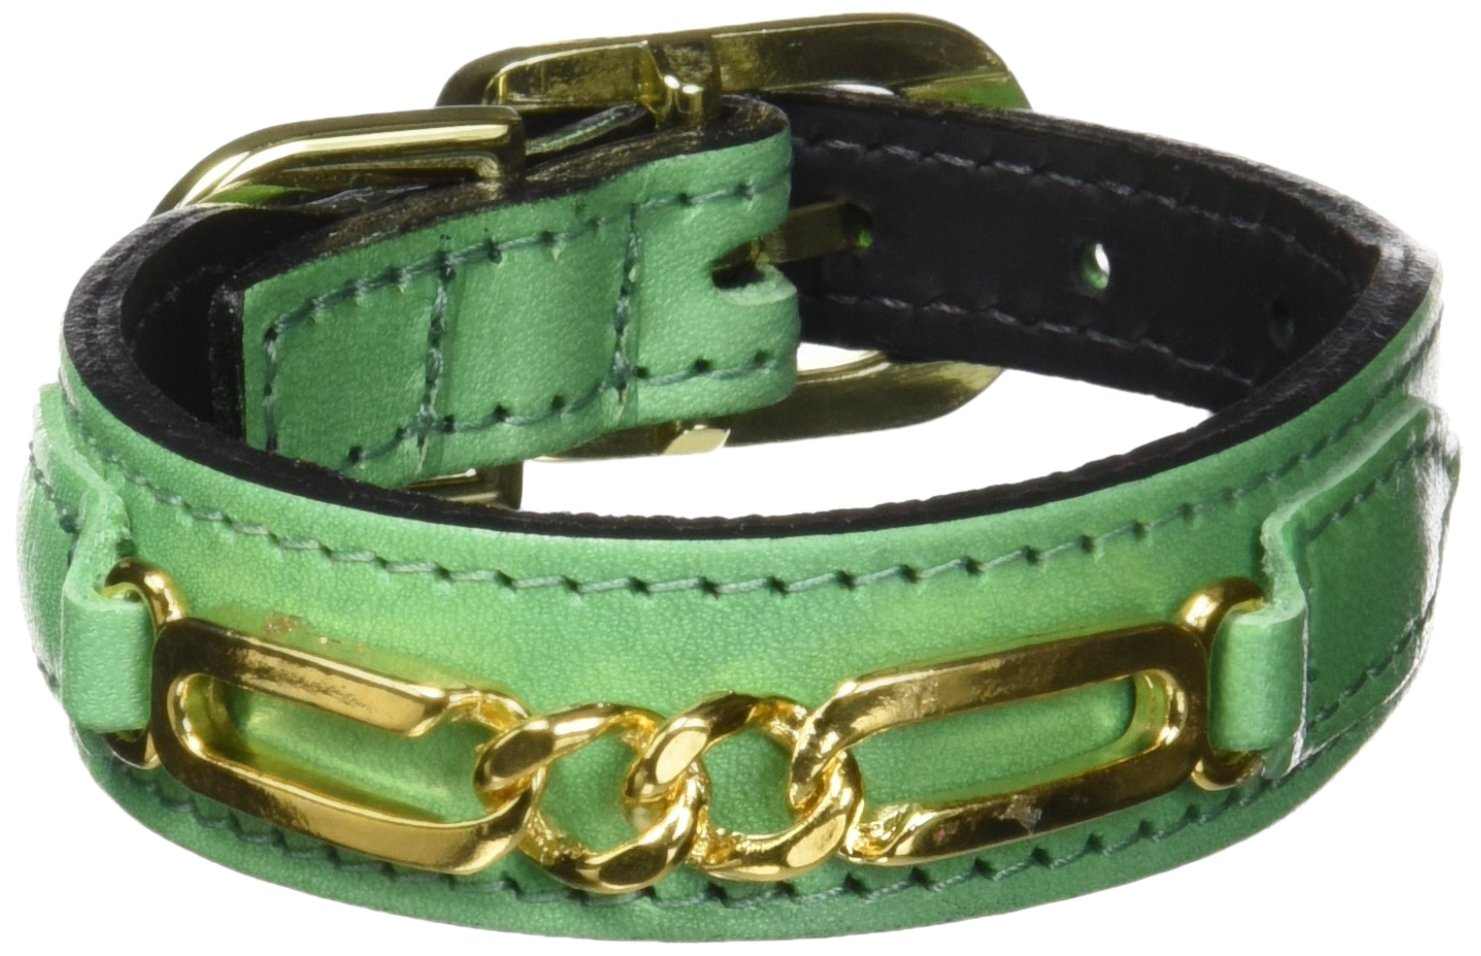 Hartman & pink 1568 Central Park Dog Collar, 8 to 10-Inch, Kelly Green